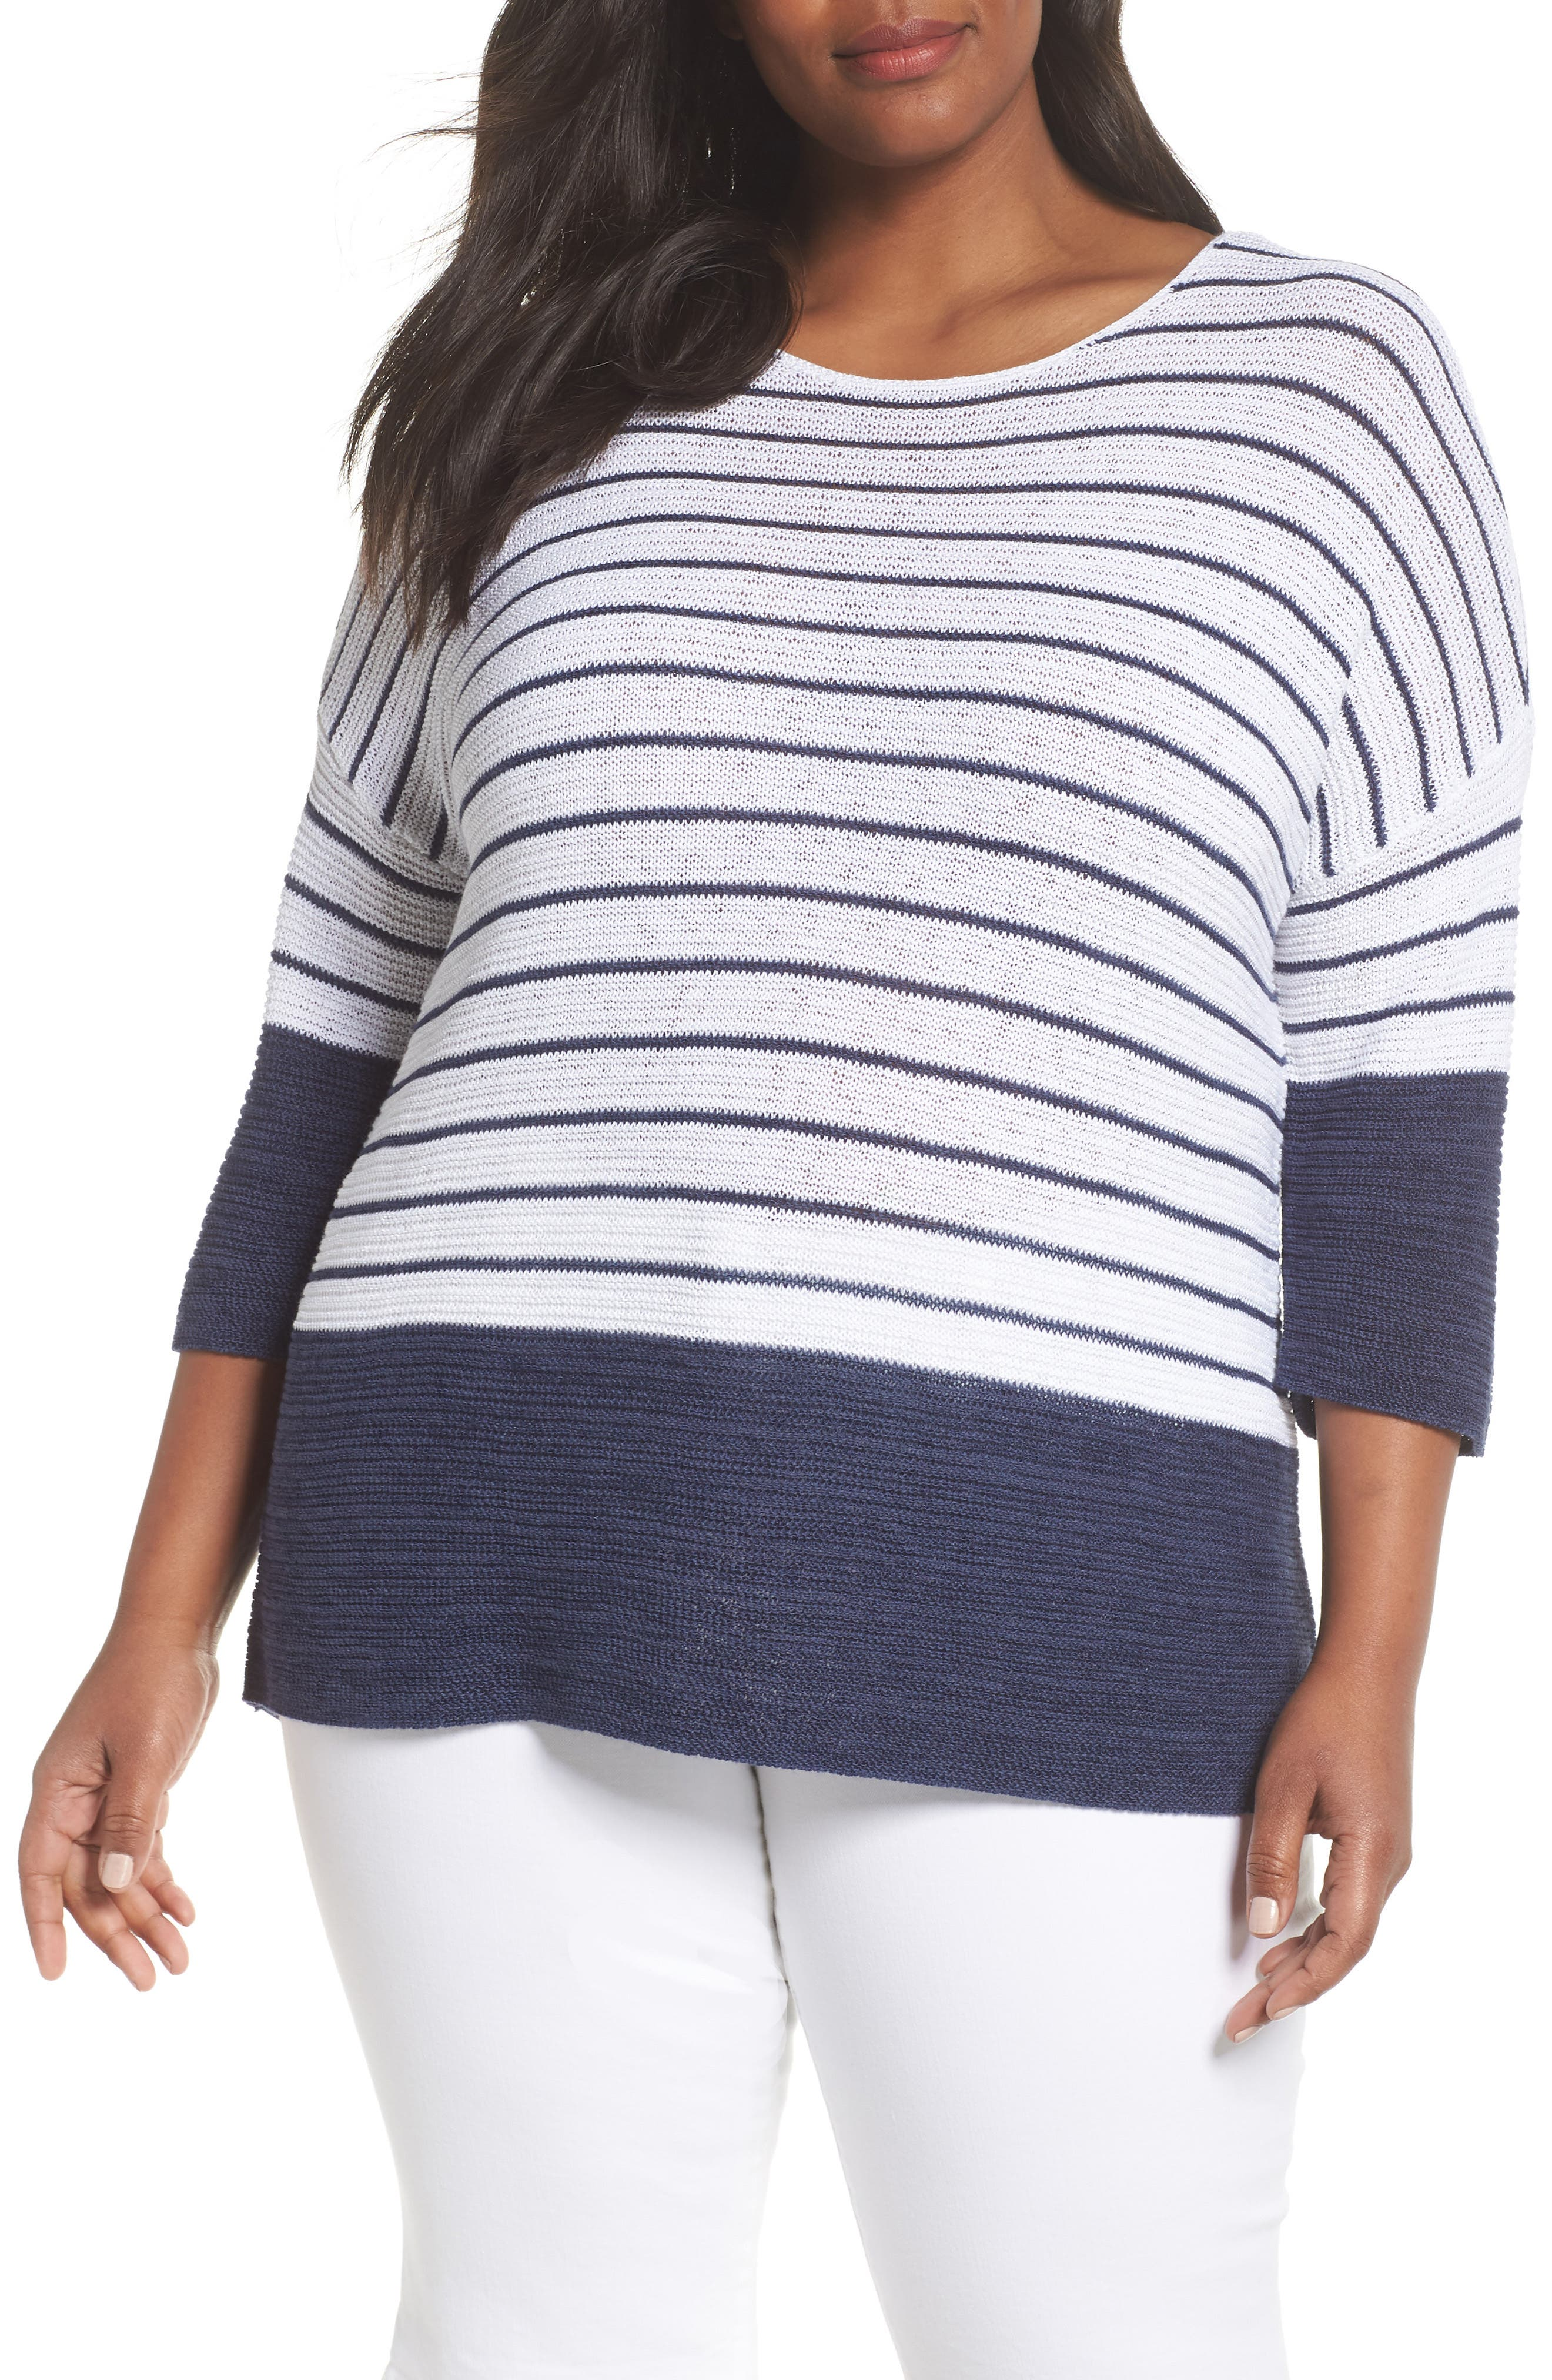 Liven up your warm-weather sweater drawer with the fresh stripes of a relaxed knit top finished in bold indigo for a faux layered look. Style Name: Nic+Zoe Crossroads Knit Top (Plus Size). Style Number: 5612088. Available in stores.